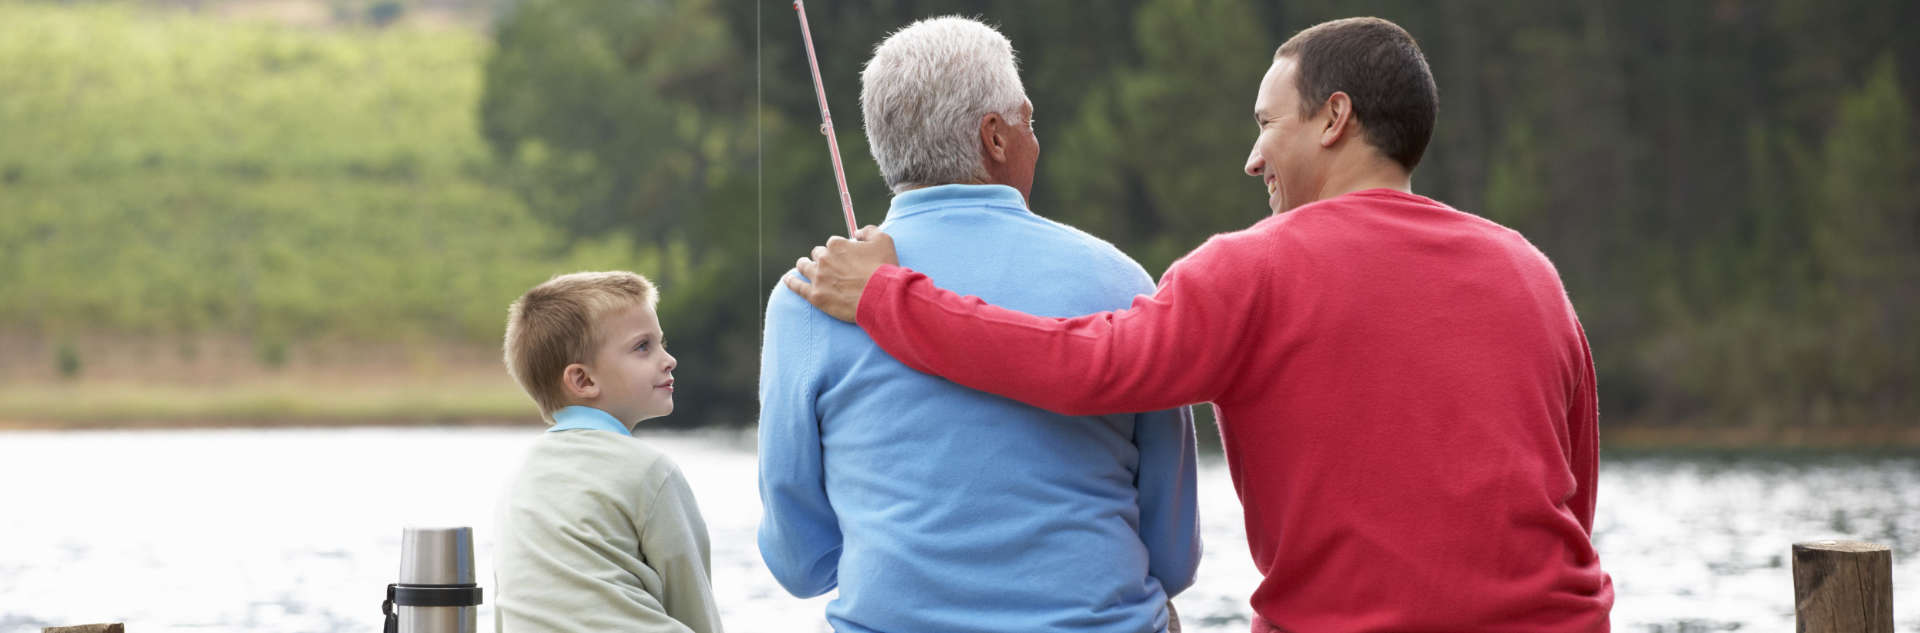 a photo of three people, son, father and grandfather while fishing at a lake